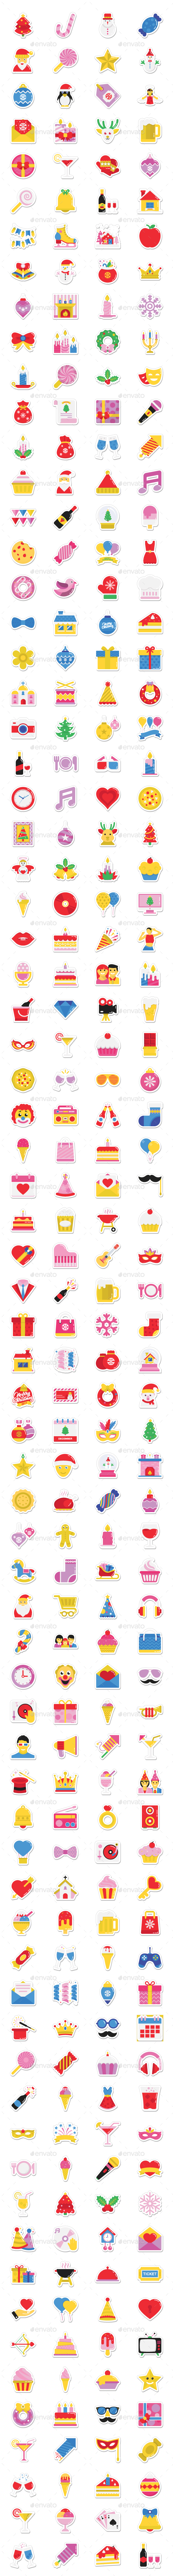 GraphicRiver 290 Party and Celebration Stickers 20792888